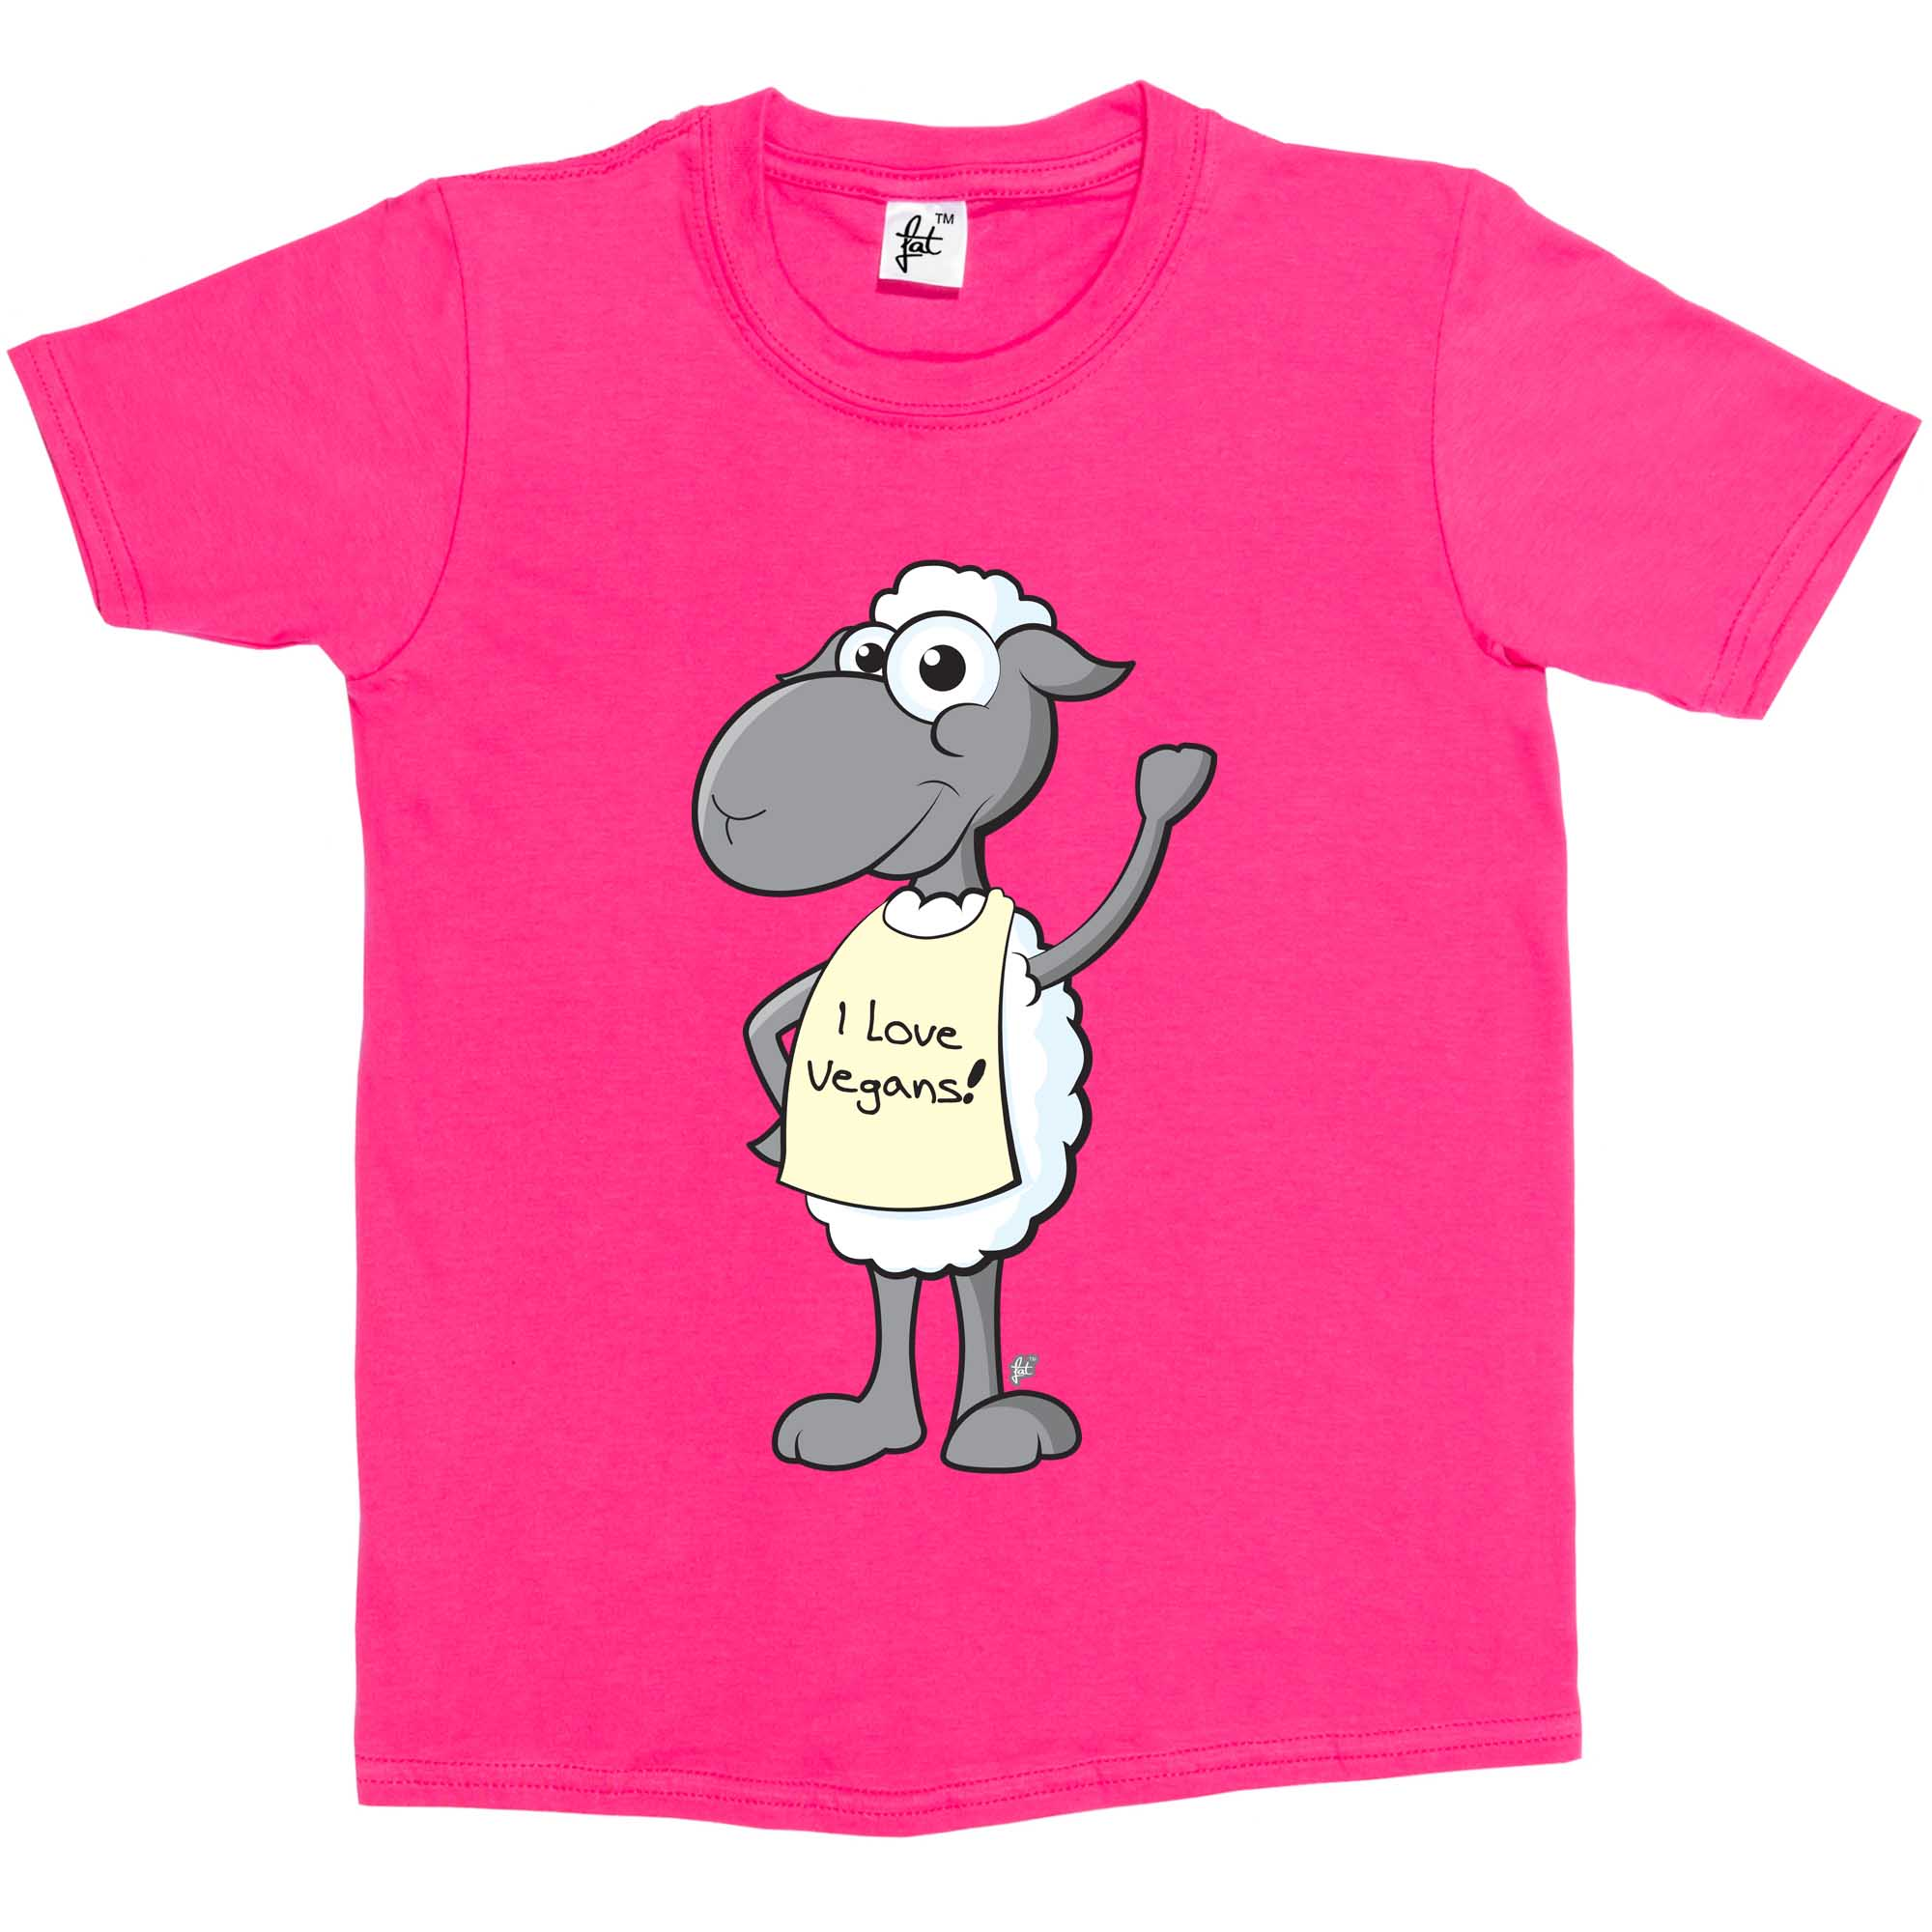 Girls T-Shirt Waving Smiling Sheep Wearing I Love Vegans Sign Kids Boys